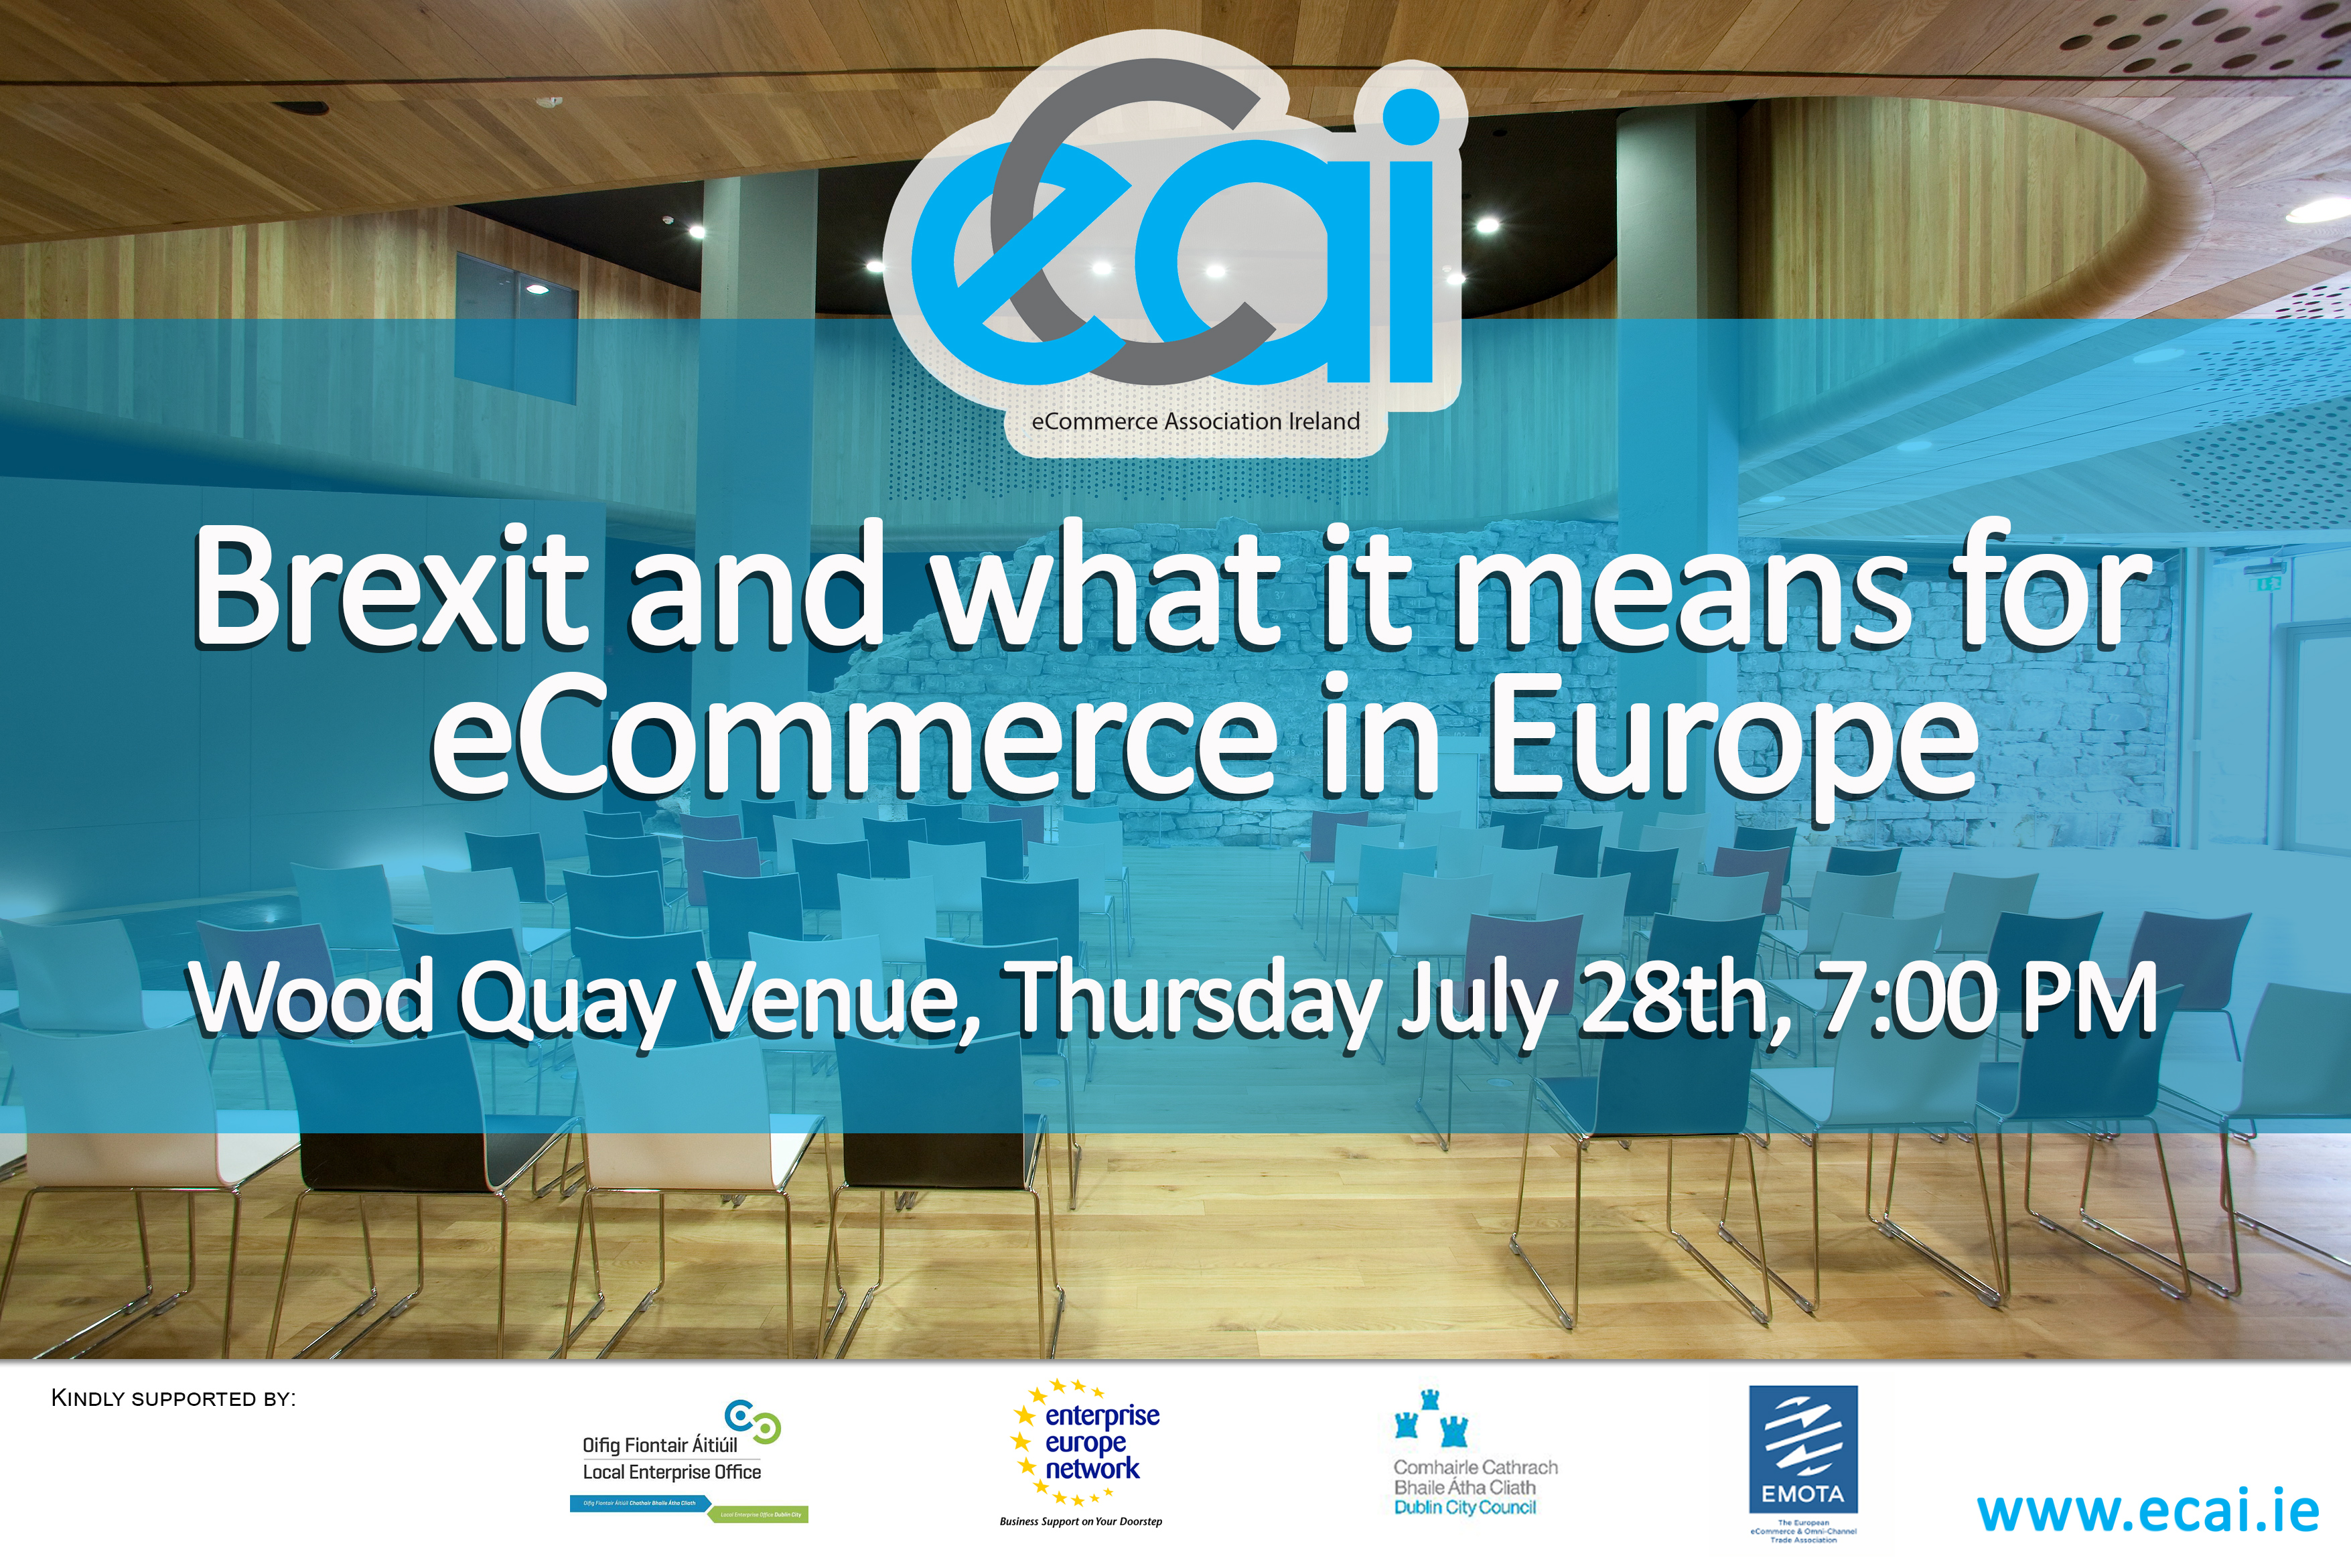 Ecommerce Association of Ireland (eCAI) Offical Launch